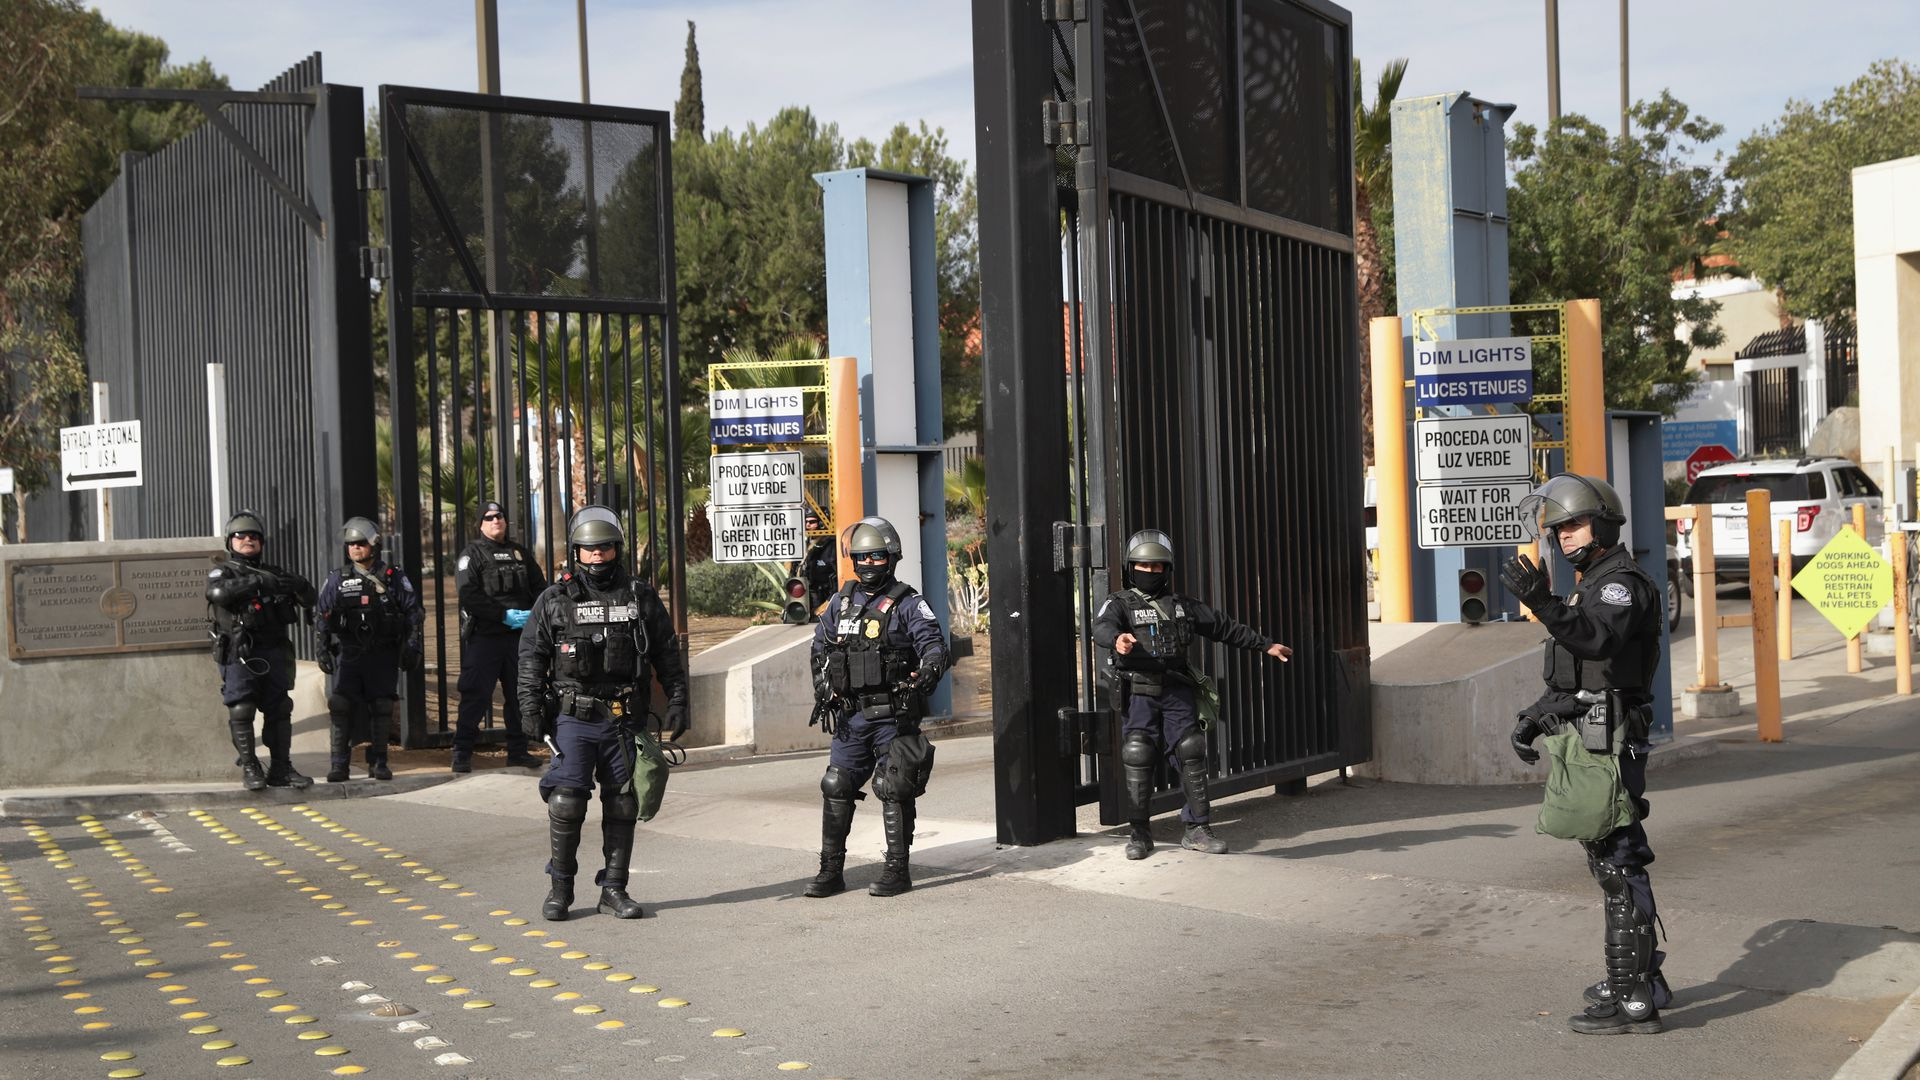 Customs border and protection